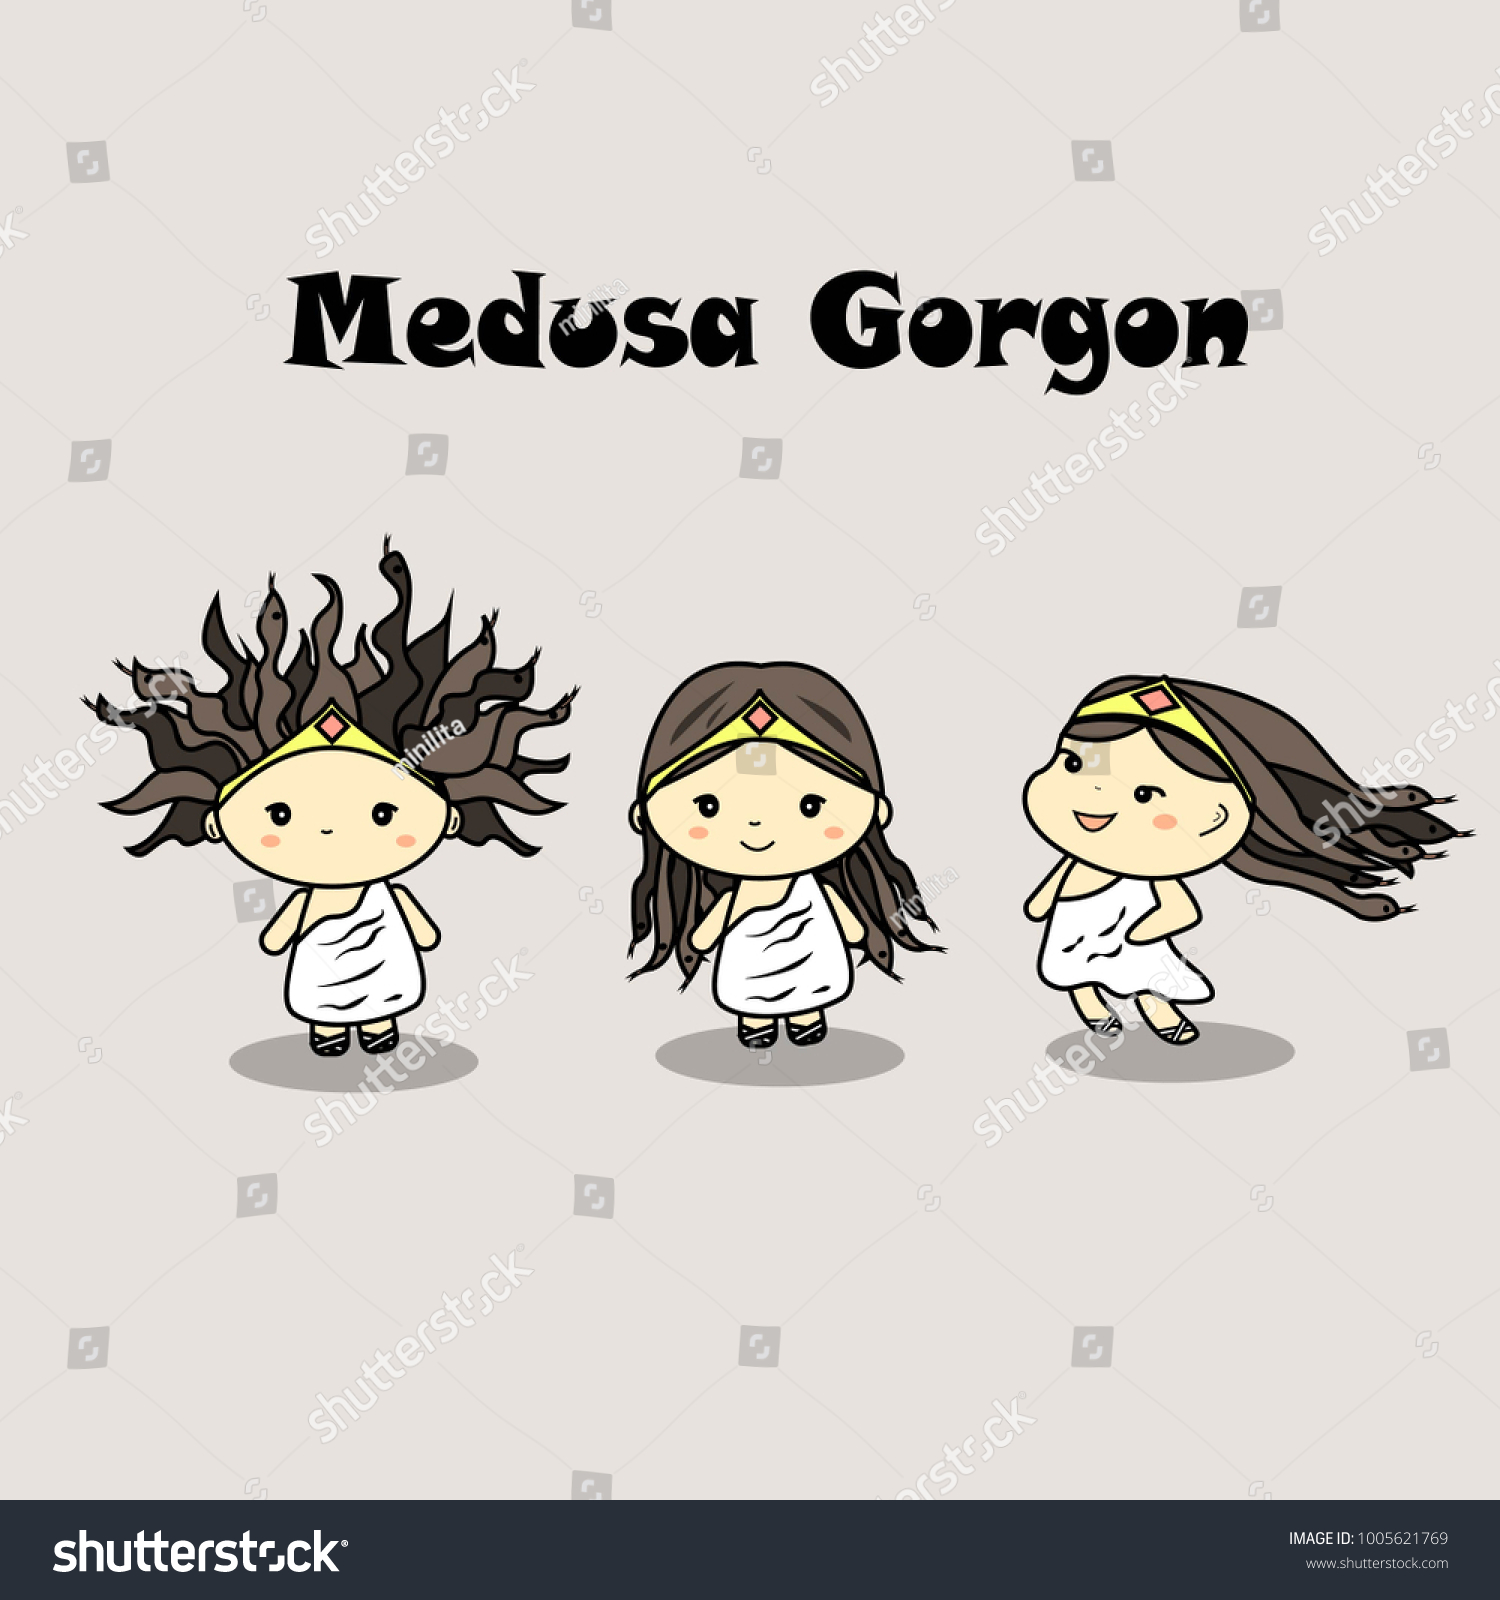 Meduza Gorgon Cute Chibi Illustration Bad Stock Vector Royalty Free